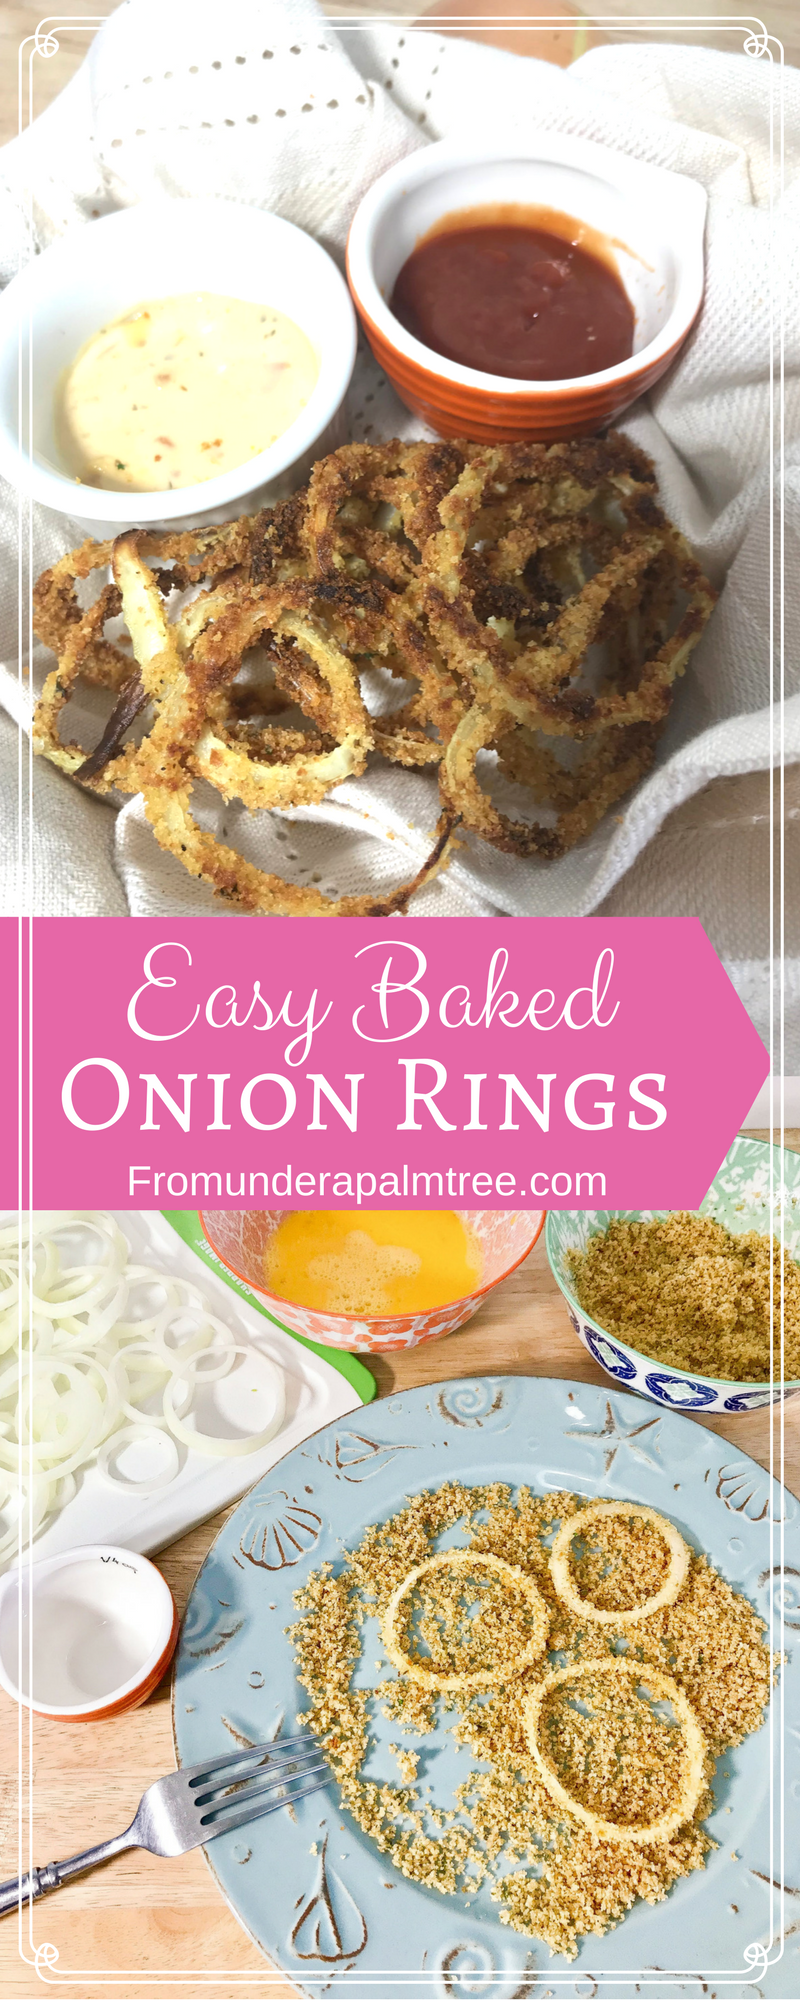 Easy Baked Onion Rings | Homemade | recipe | baked | easy | sauce | healthy | how to make | home | sweet onion | simple |